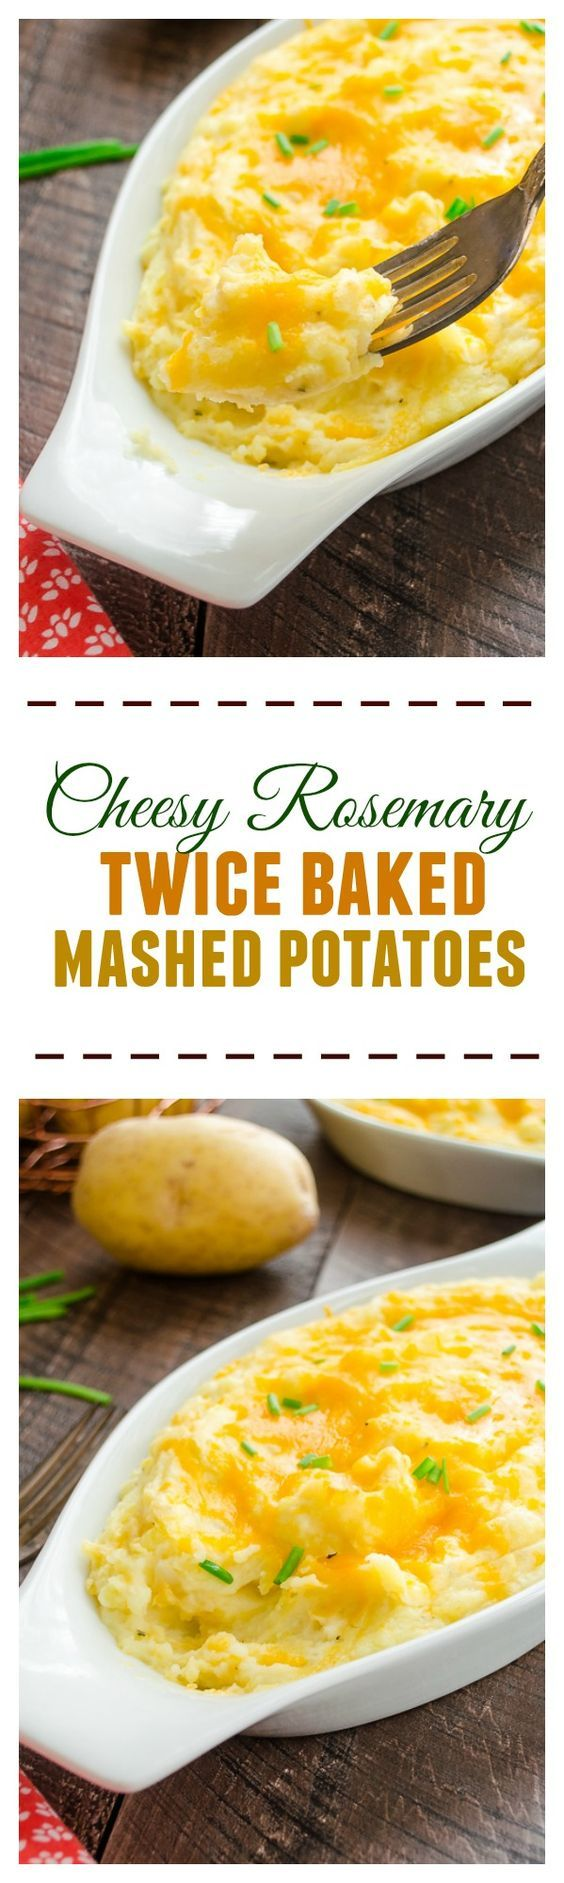 Cheesy Rosemary Twice Baked Mashed Potatoes | flavorthemoments.com [ad] #9thWonder @BeholdPotatoes